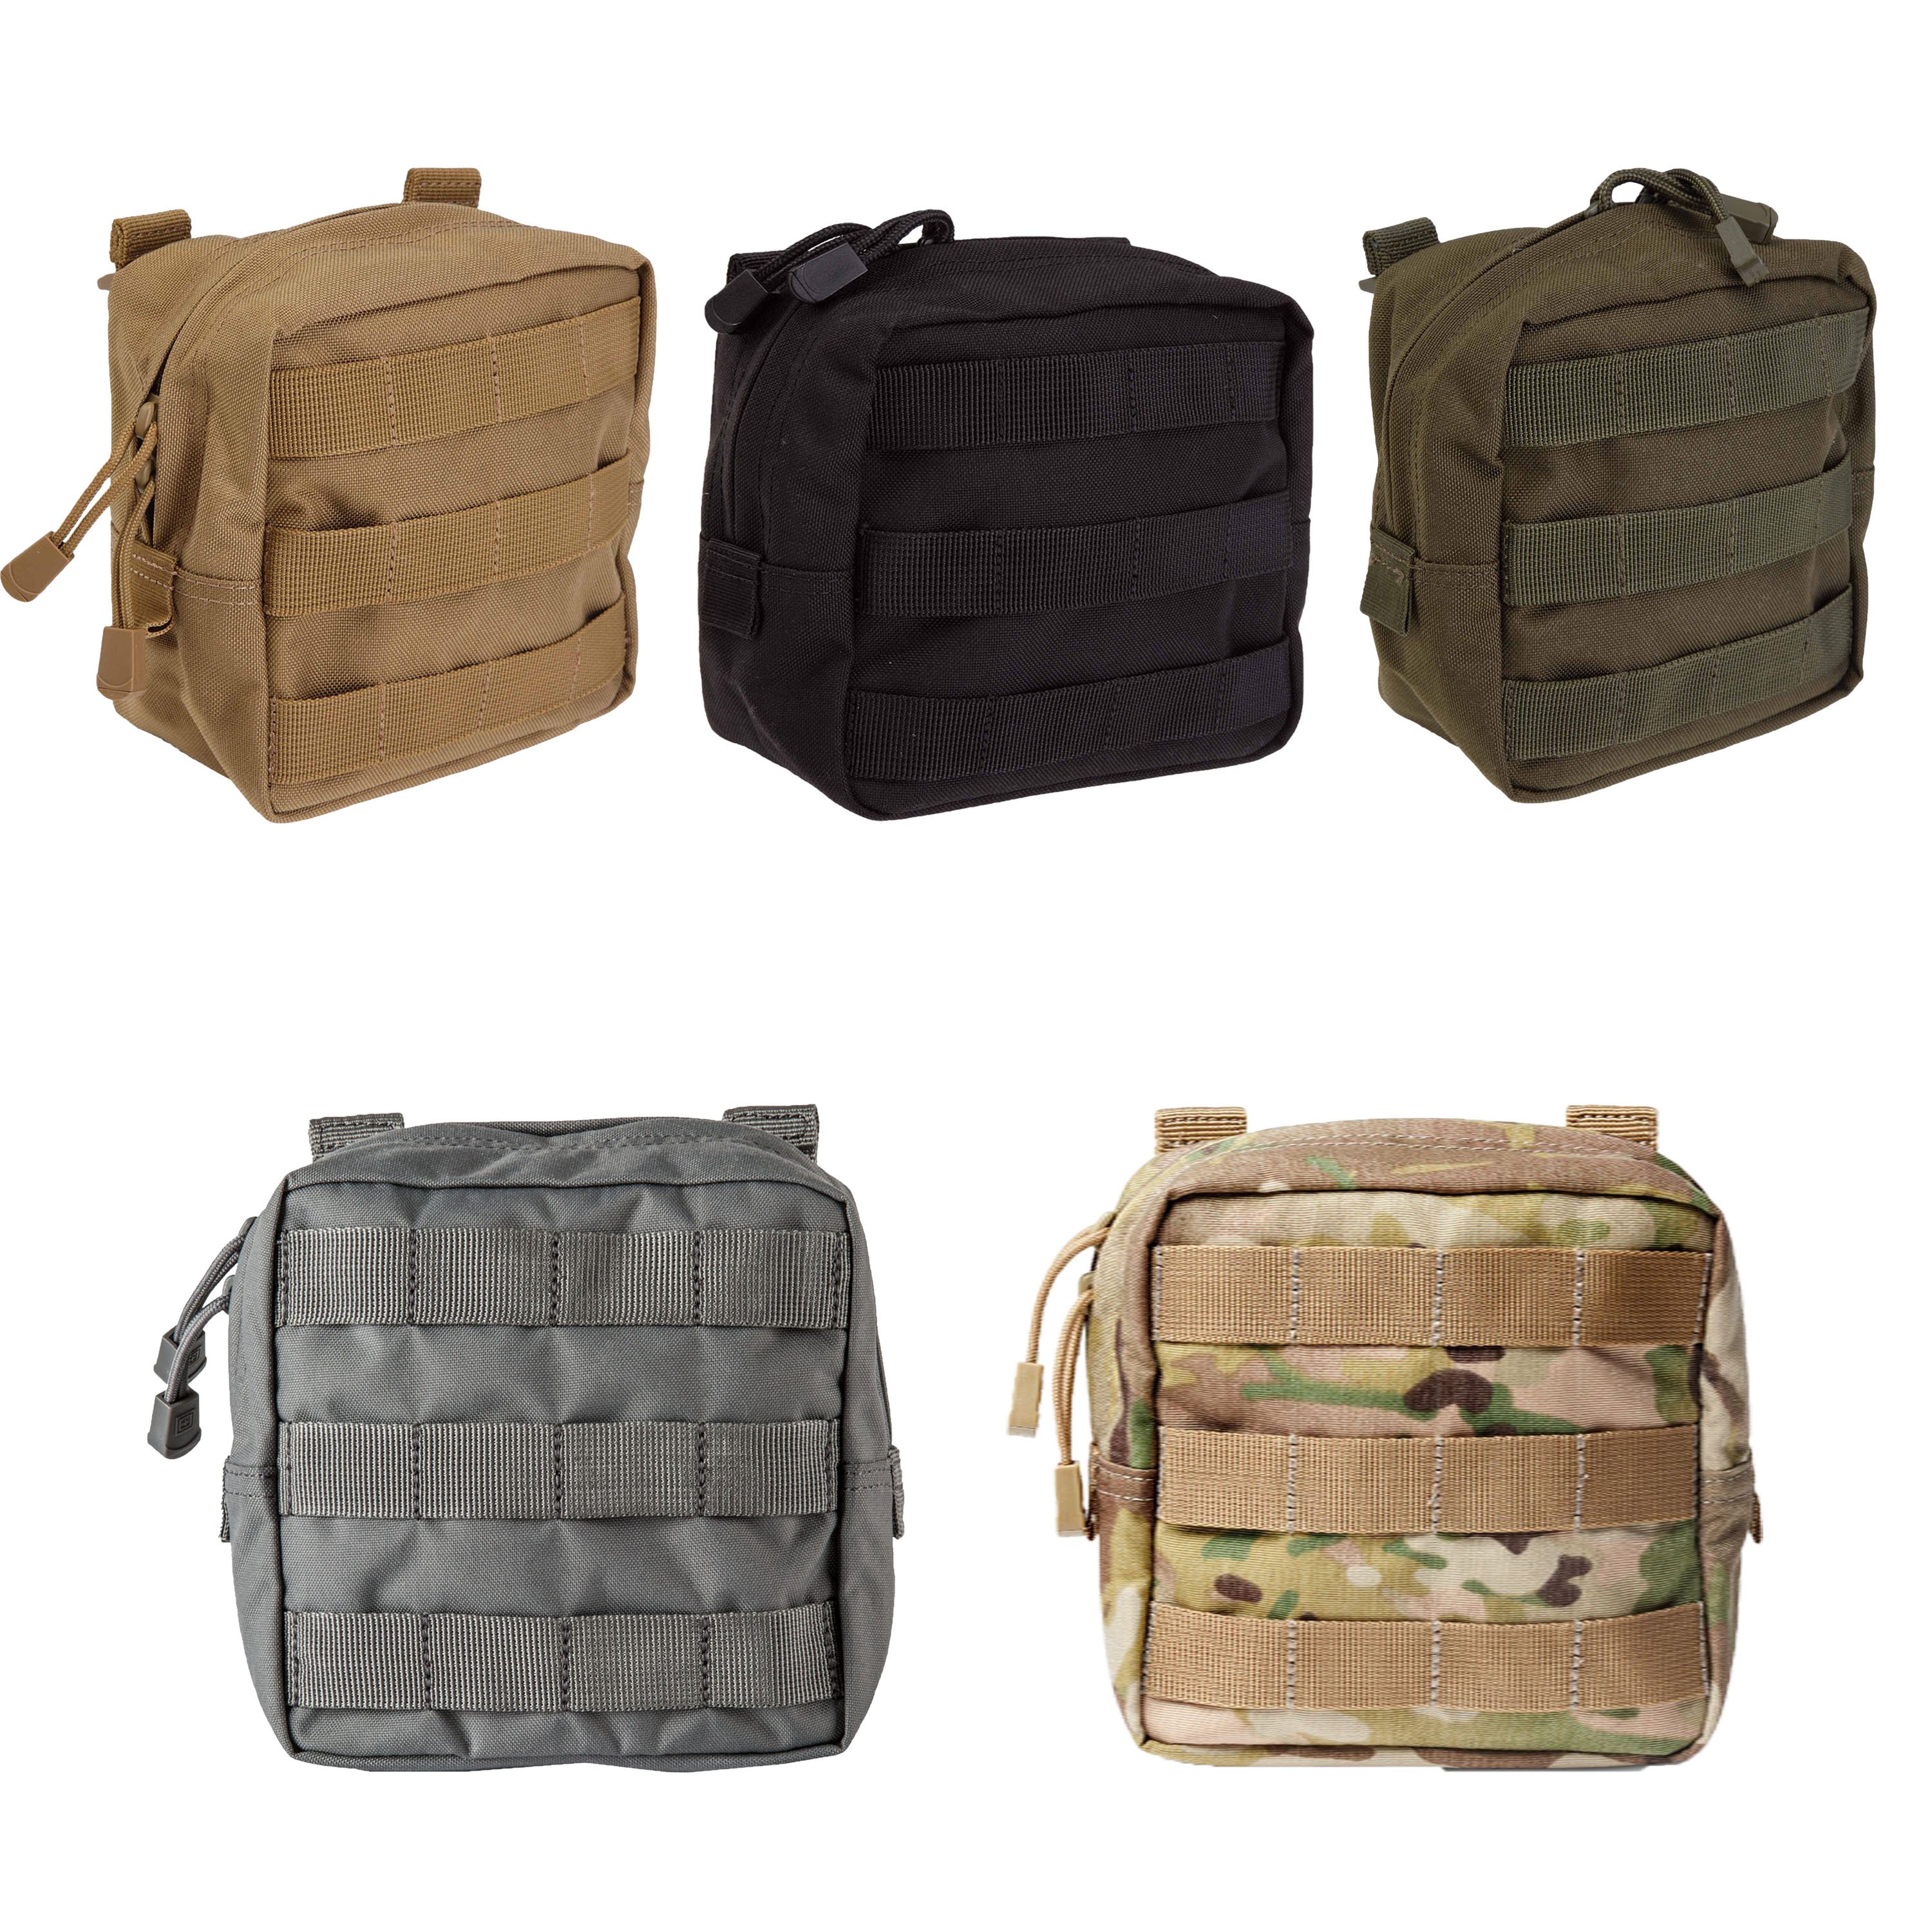 Details About 5 11 Tactical 6x6 Military Molle Lightweight Nylon Pouch Gear Bag Style 58713